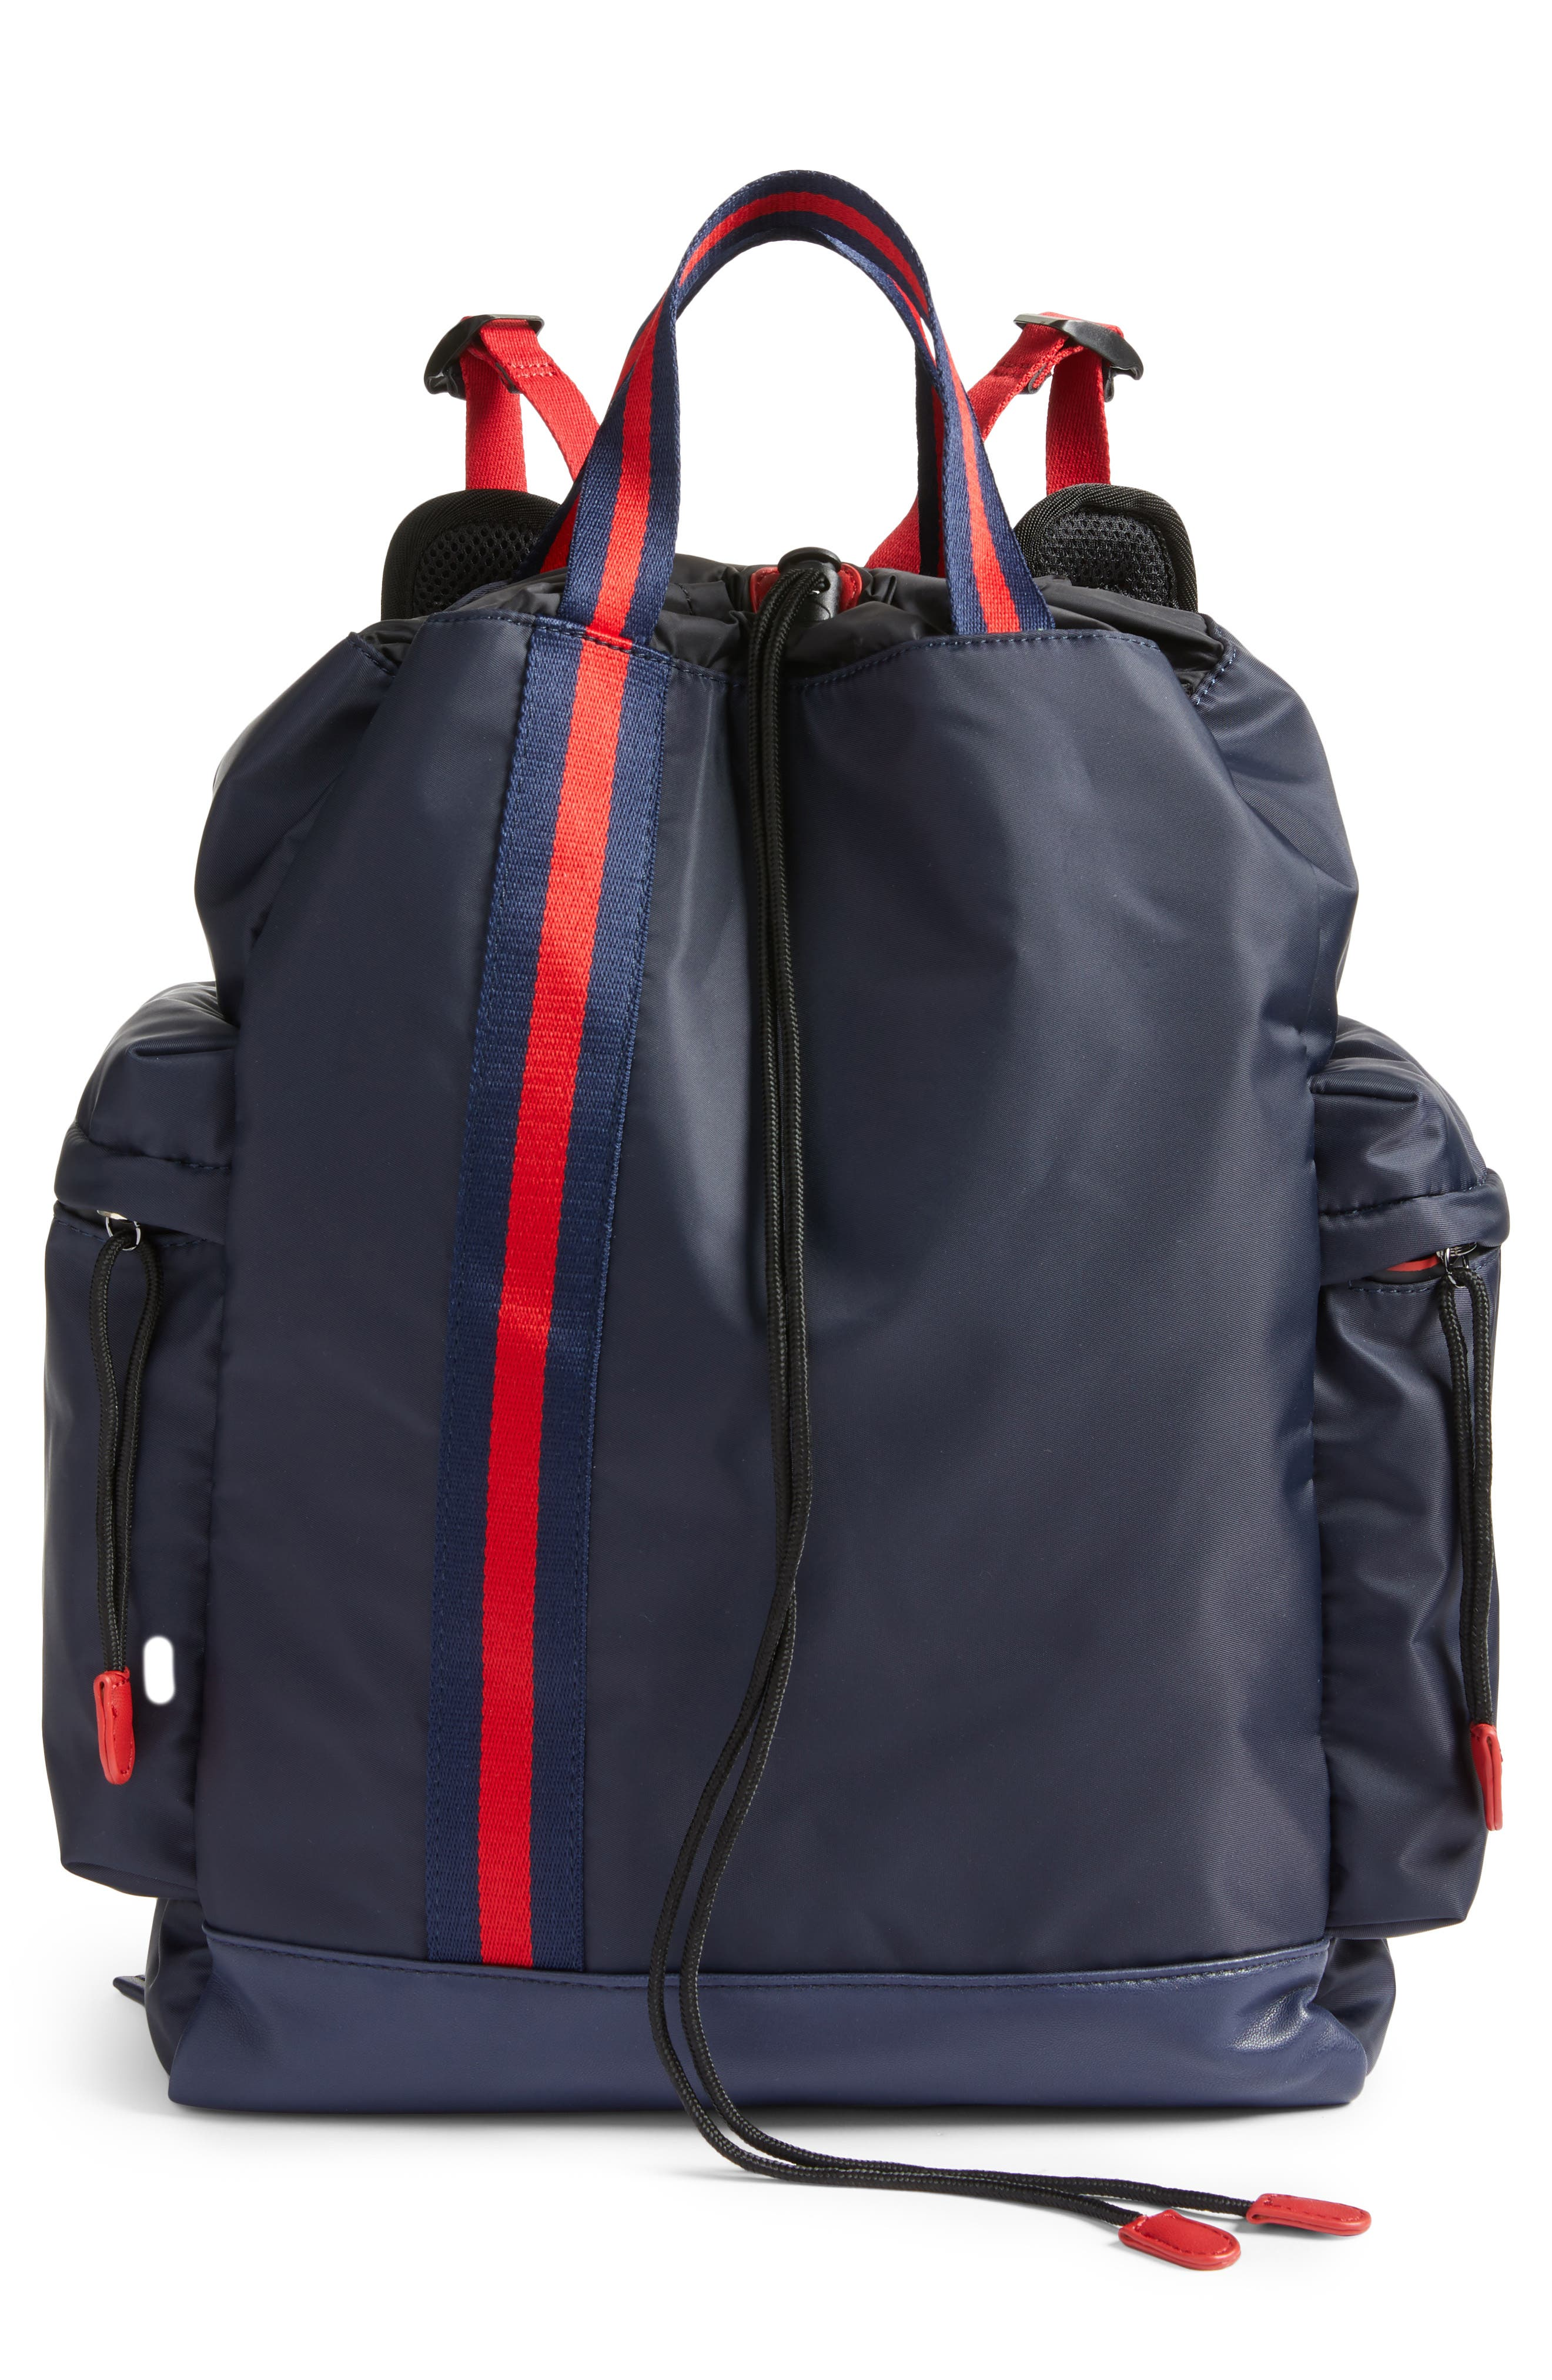 Yungg Stripe Strap Backpack,                         Main,                         color, Navy/ Red